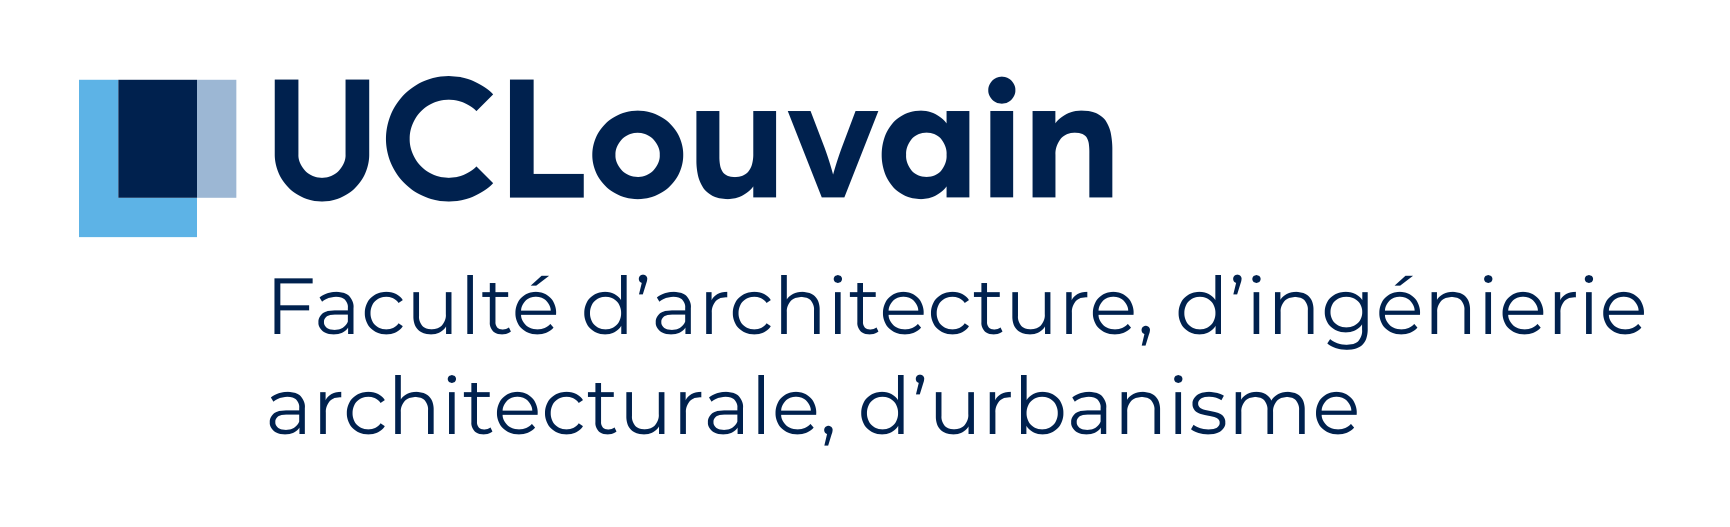 UCLouvain is a client of Cloudalize and is using Cloudalize's GPU-powered solution to run Autodesk Revit BIM software on the Cloud for macbooks